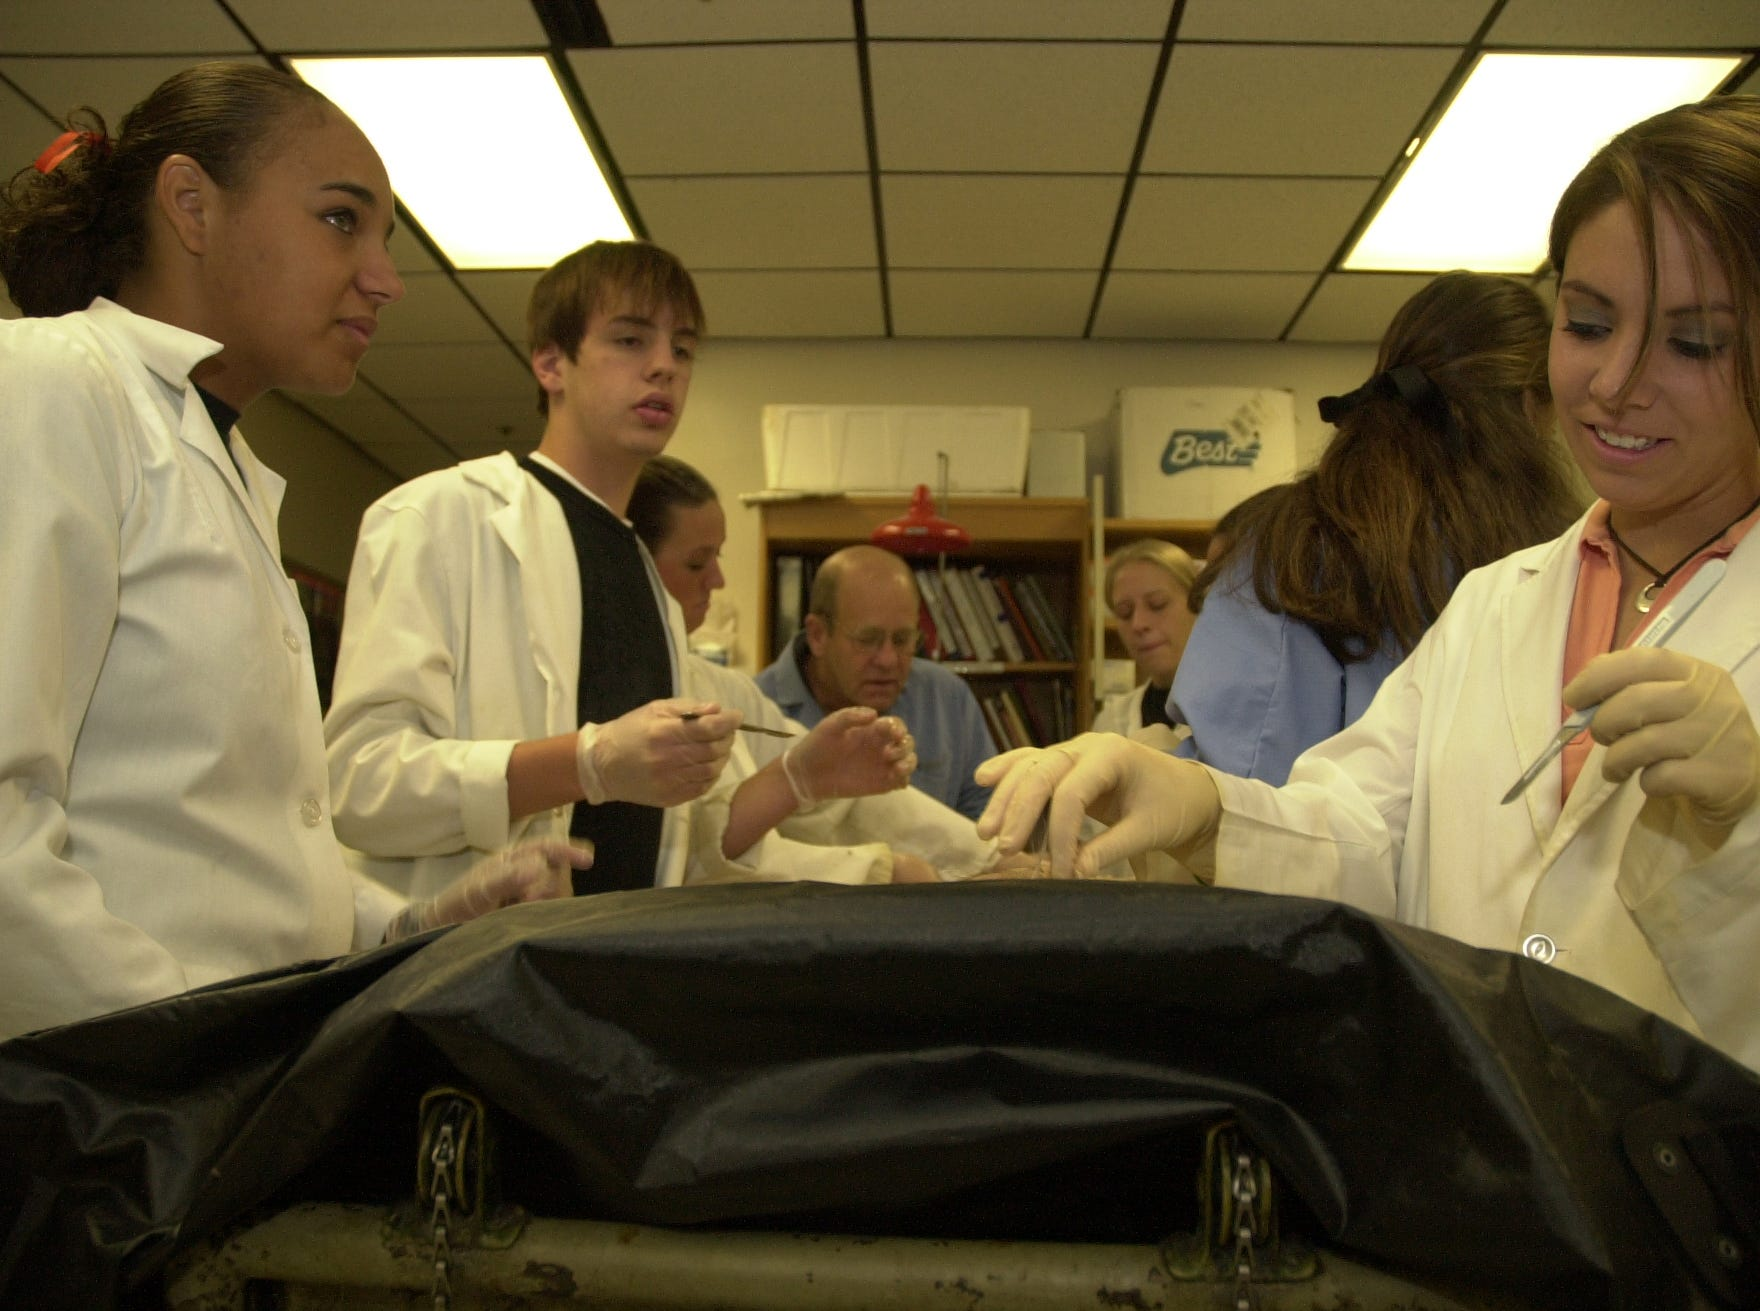 Physiology students at Clinton High School dissect a human cadaver with the help of their teacher, Dr. Harry ``Whitey'' Hitchcock, in background.  From left: Shere Ramsey, Tyler Morrow, Rachel Geier, Hitchcock, Chantal Mings, Amanda Hatton, back to camera, and Kaylee Webster. Sept. 30 2005